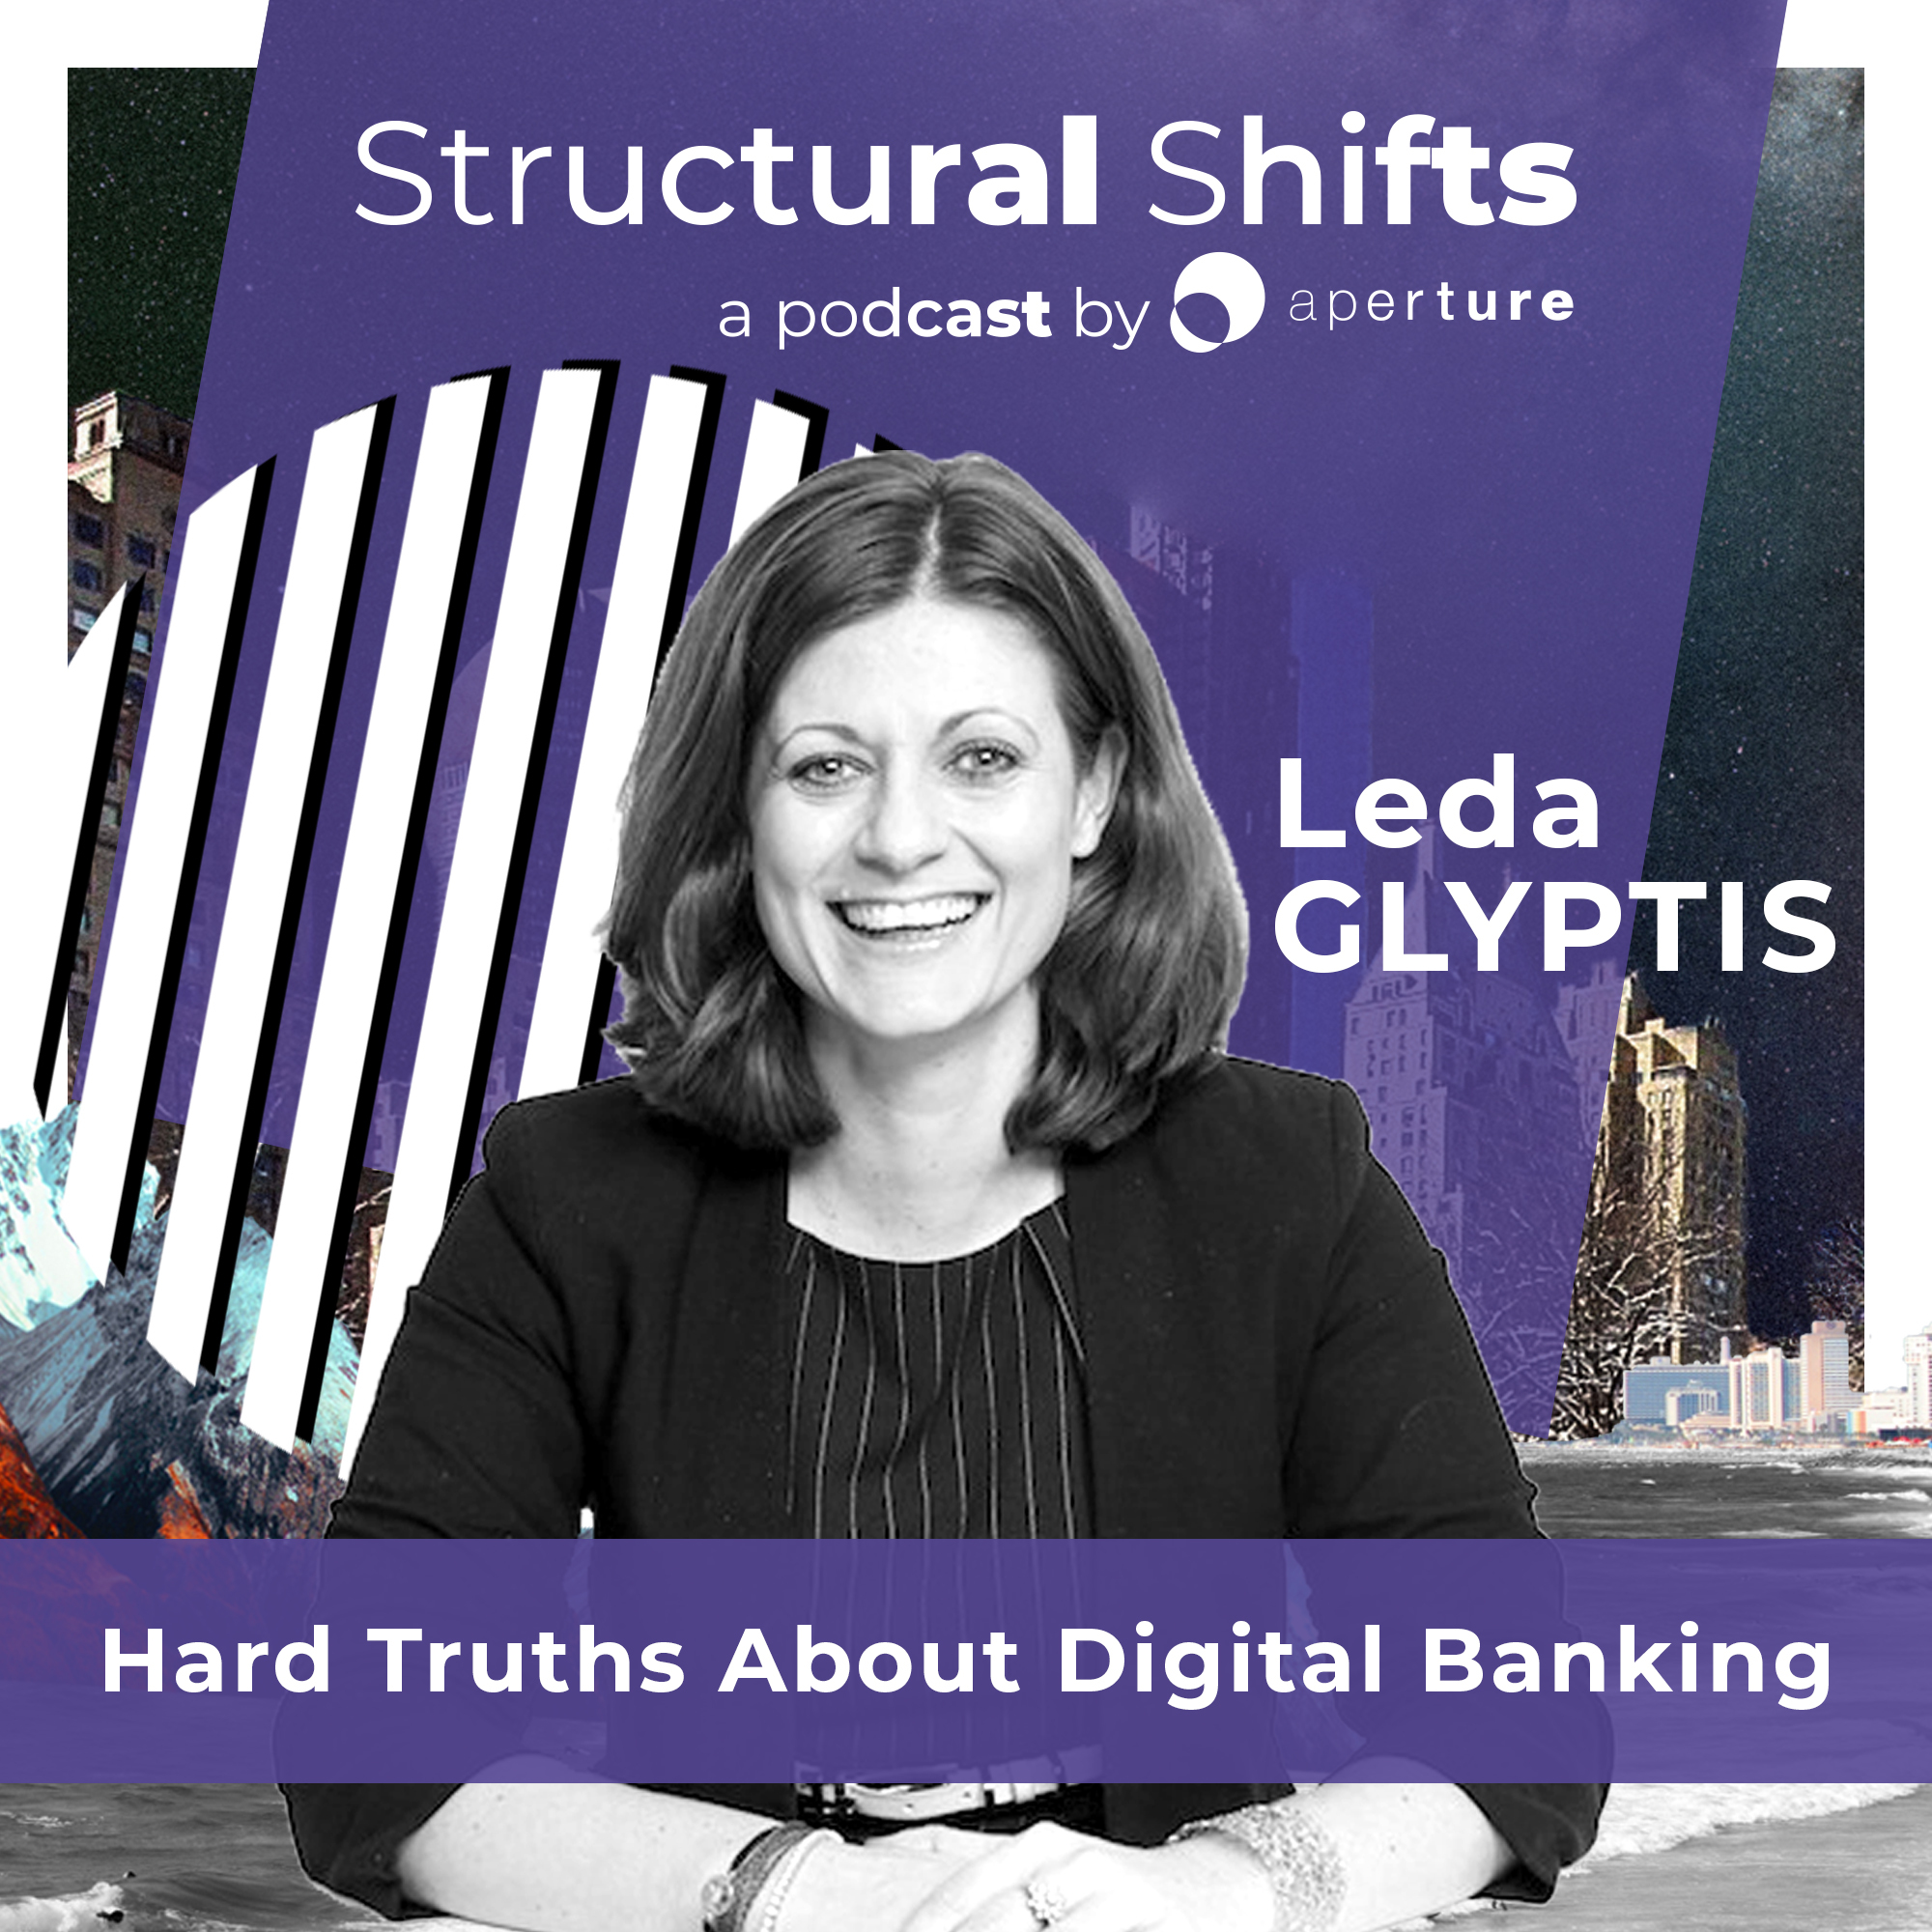 Hard Truths about Digital Banking with Leda GLYPTIS